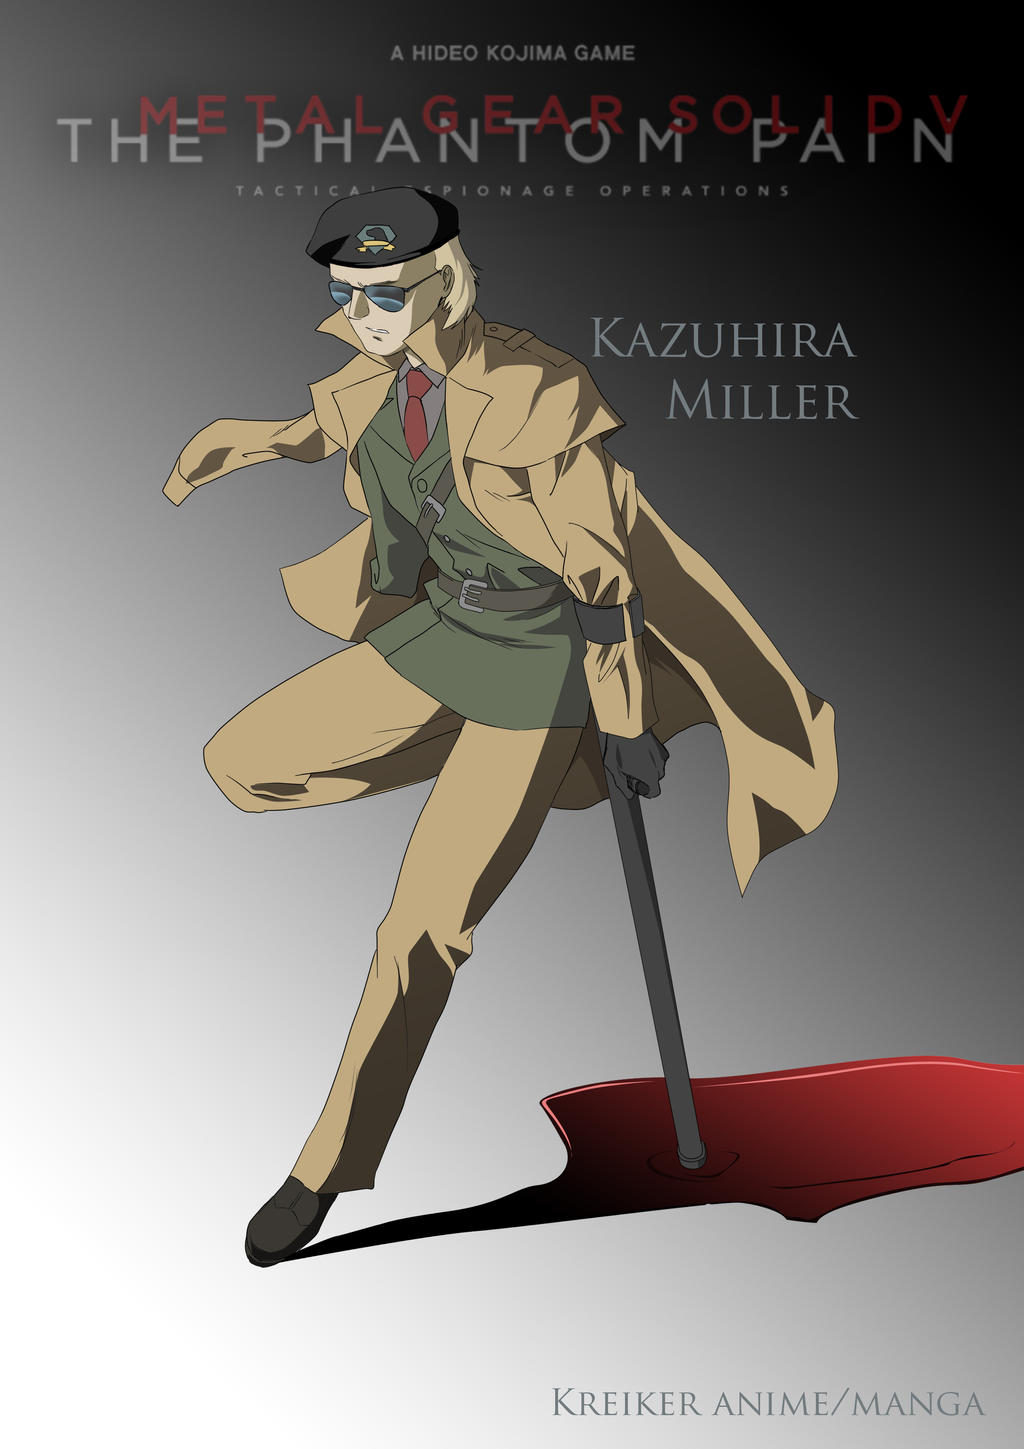 Kaz Miller By Kreikerjack On Deviantart Share the best gifs now >>>. kaz miller by kreikerjack on deviantart